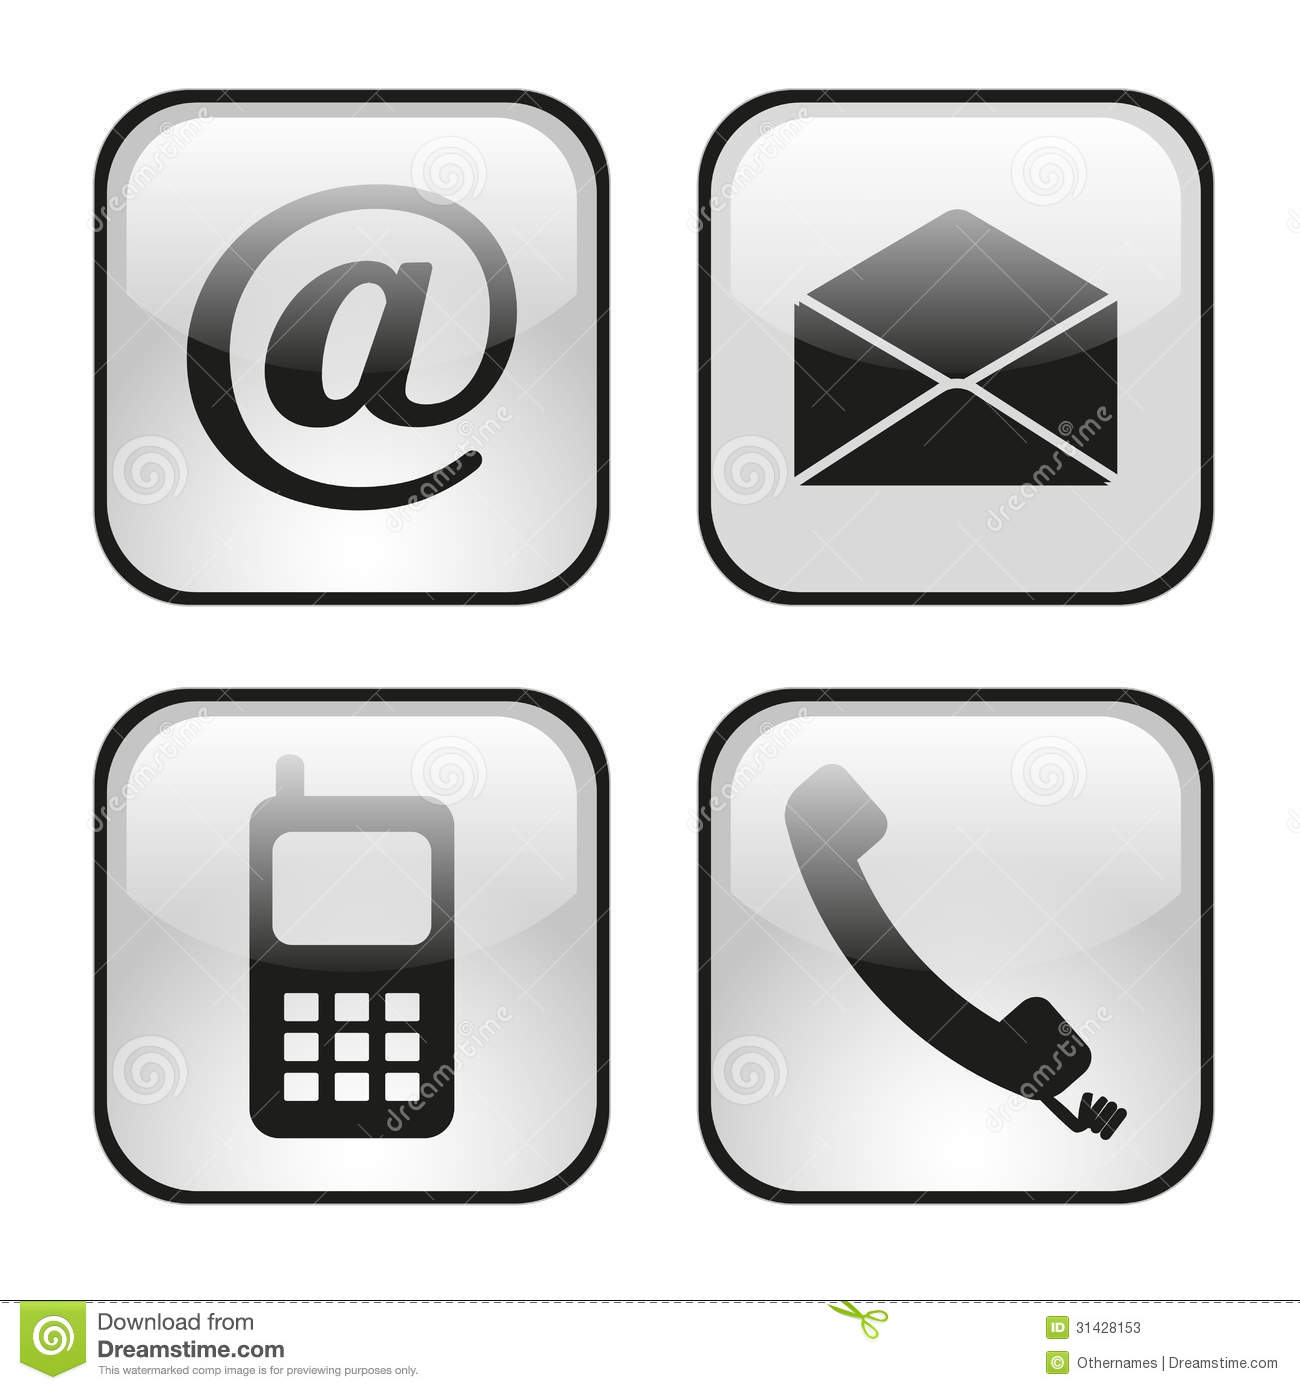 icons images contact. Email clipart phone email